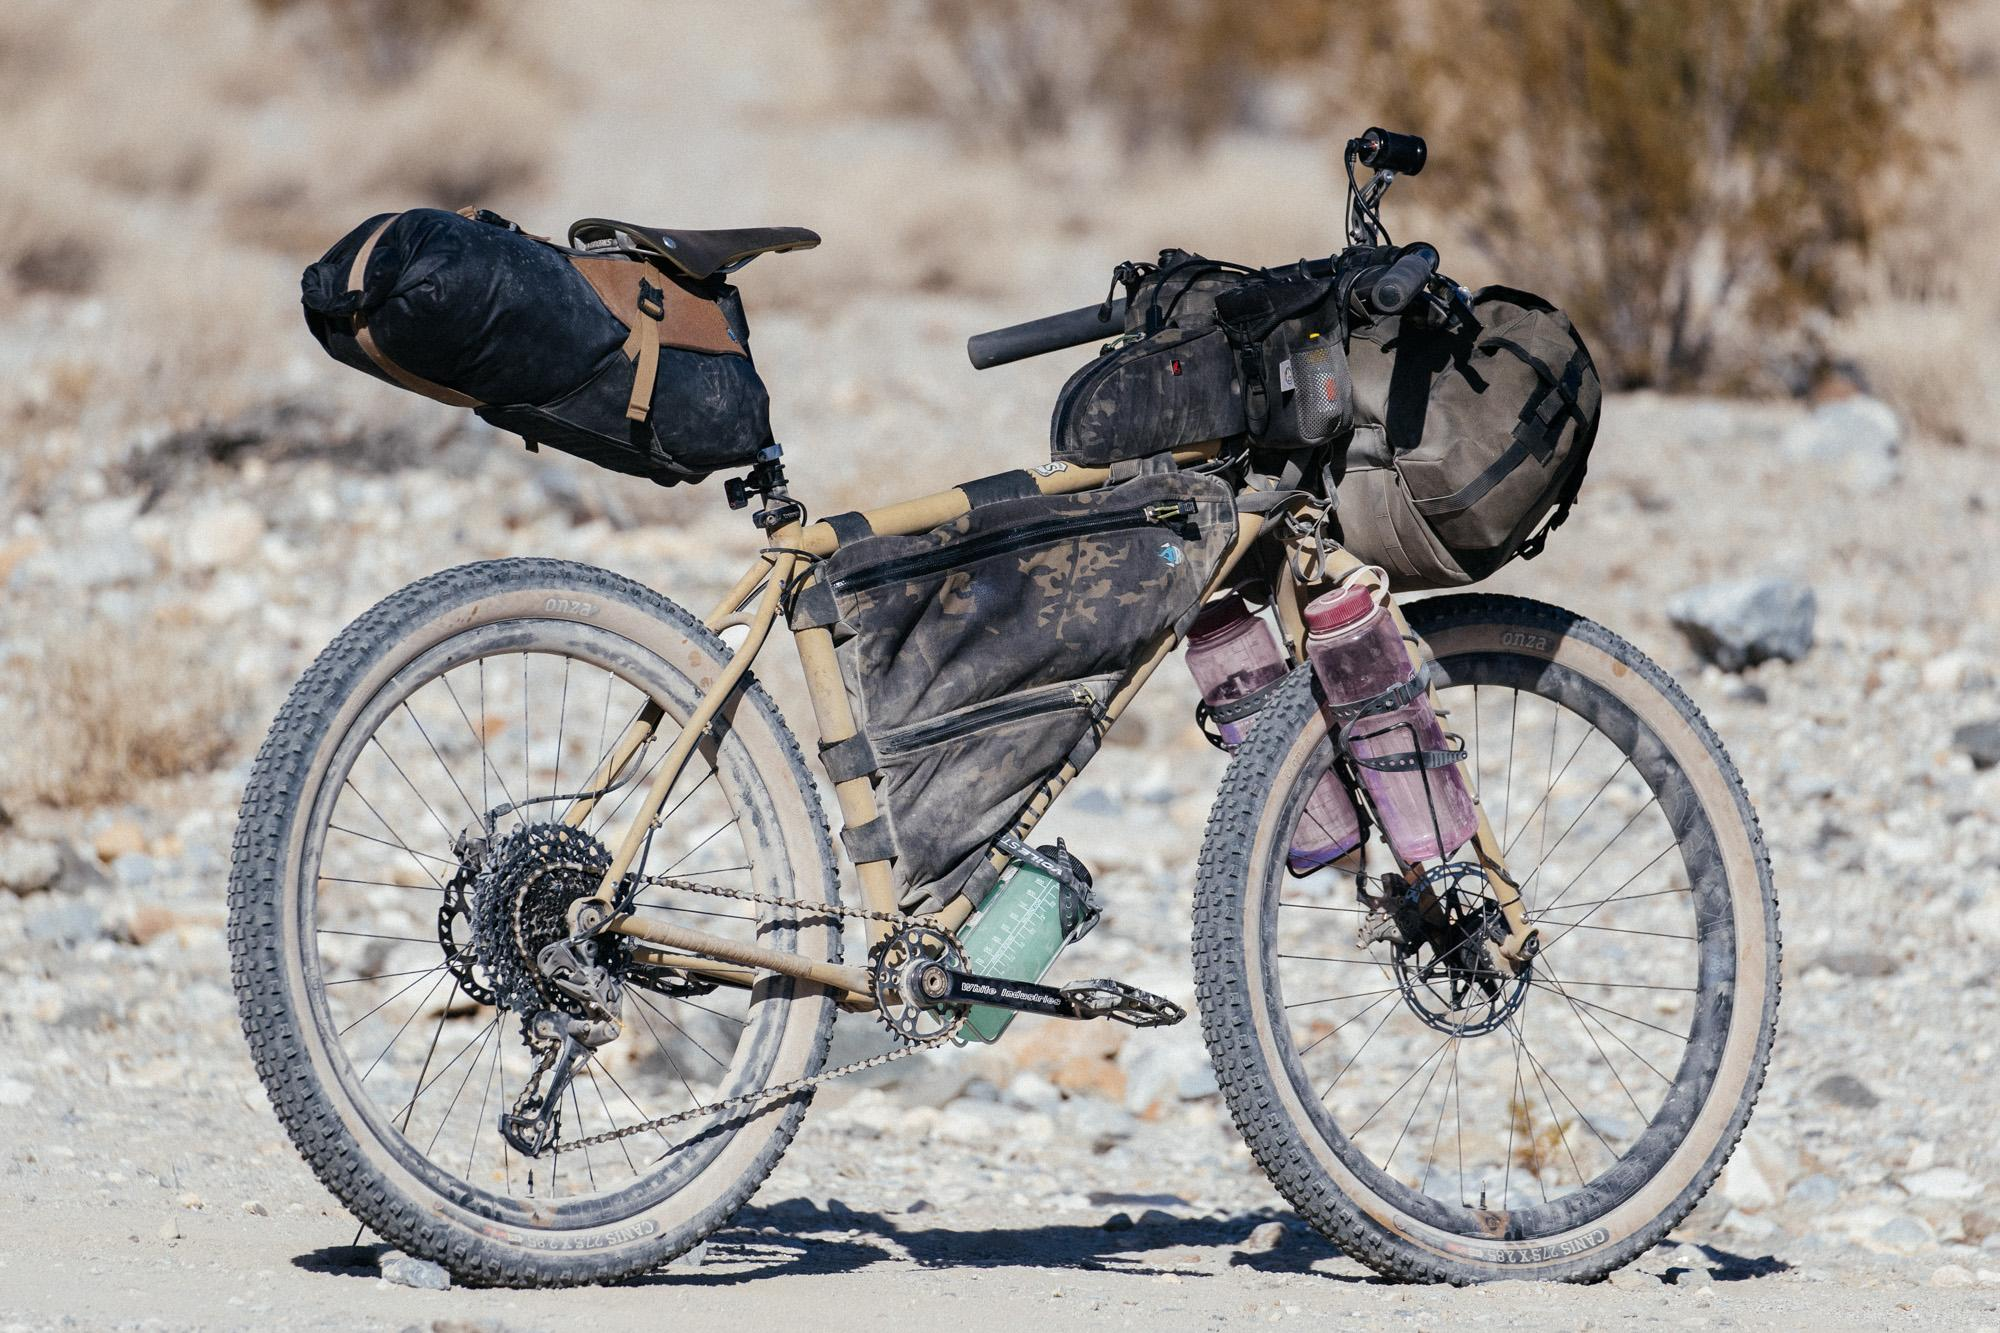 A Death Valley Prospector's Pack Mule: My 44 Bikes Creosote Cruiser